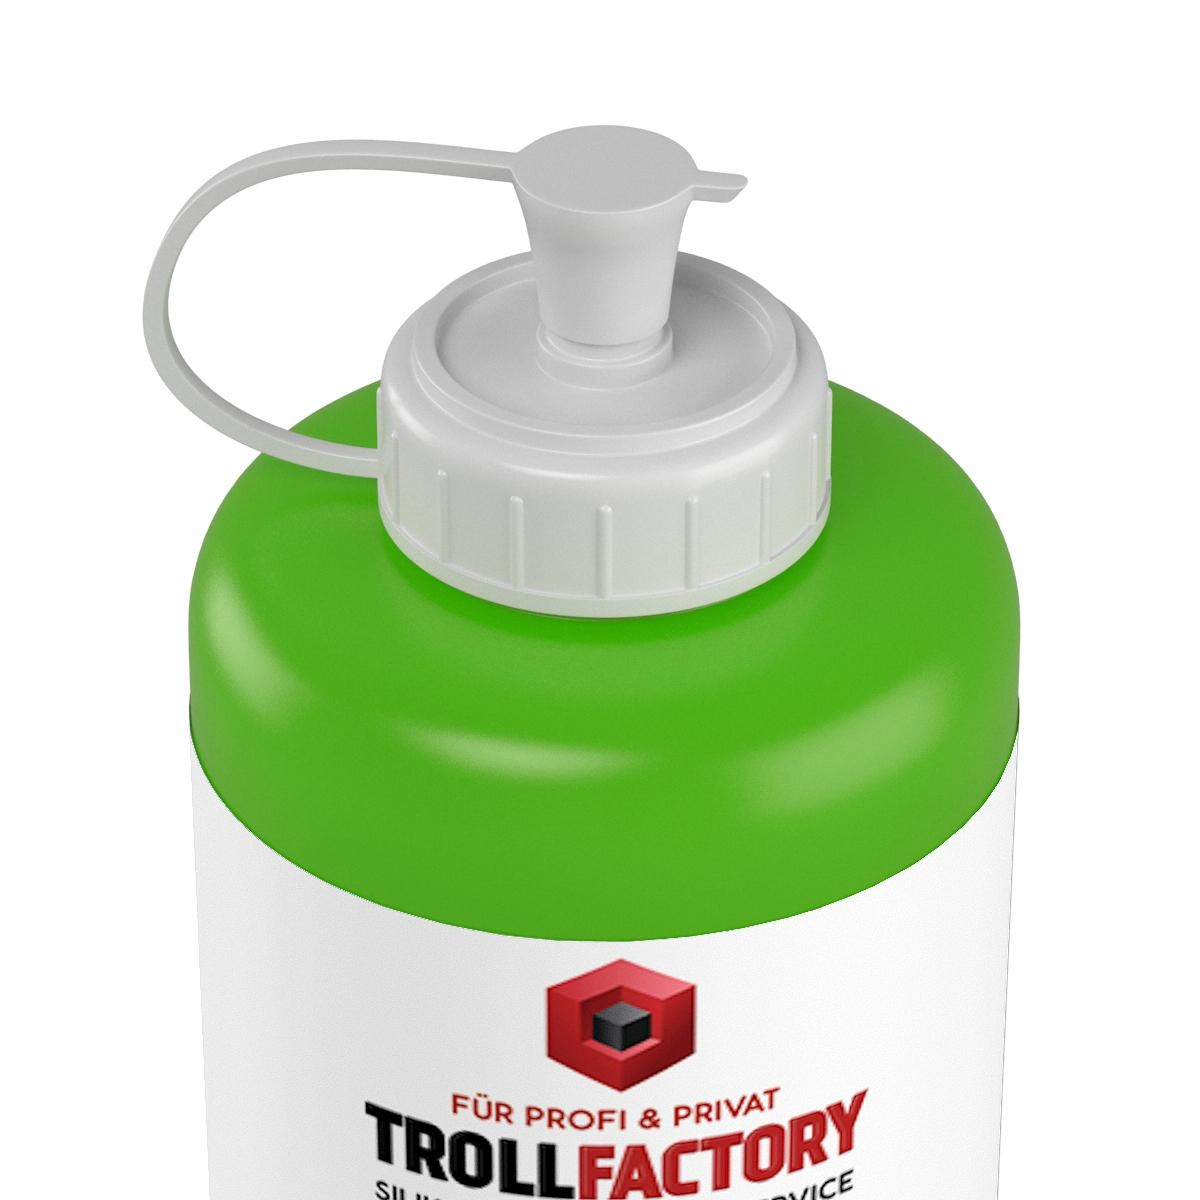 Troll Factory TFC Troll Factory Silicone Rubber type 2 silicone 2000g